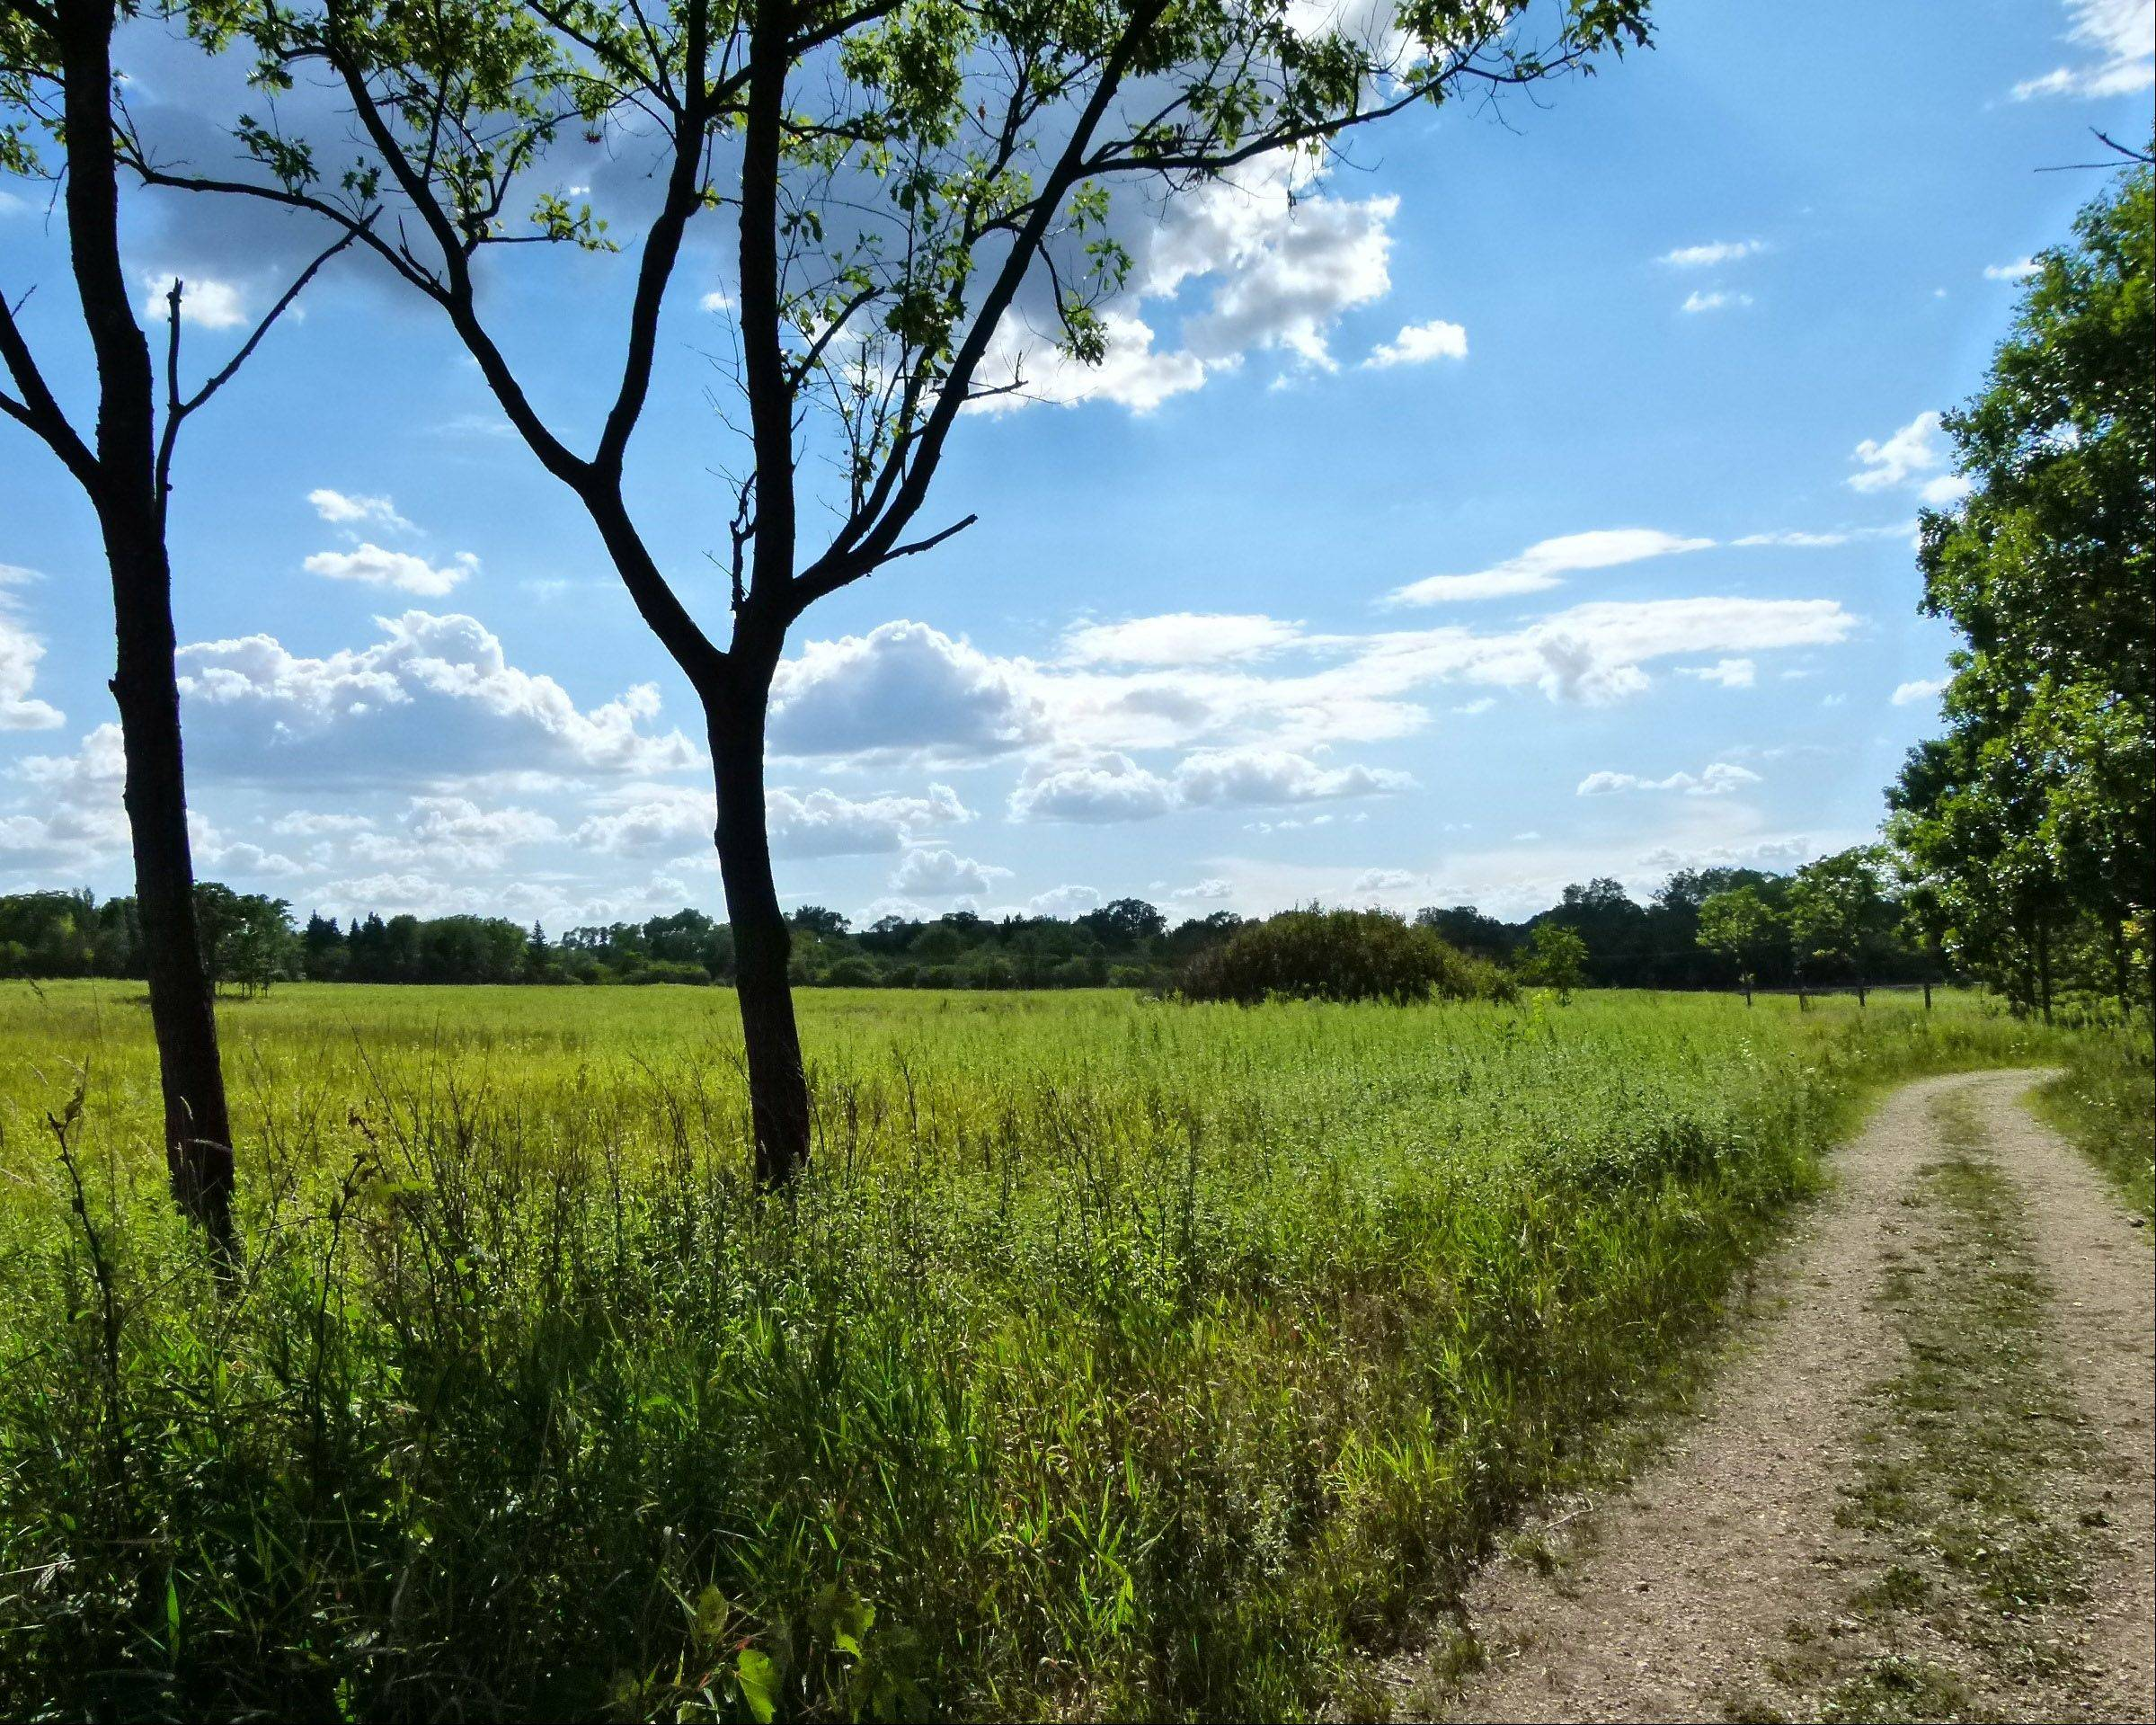 I visited the Morton Arboretum's prairie for the first time and the variety of plants and trees, the insects and the butterflies plus the wildness of the prairie gave me so much peace and joy to stroll its paths.